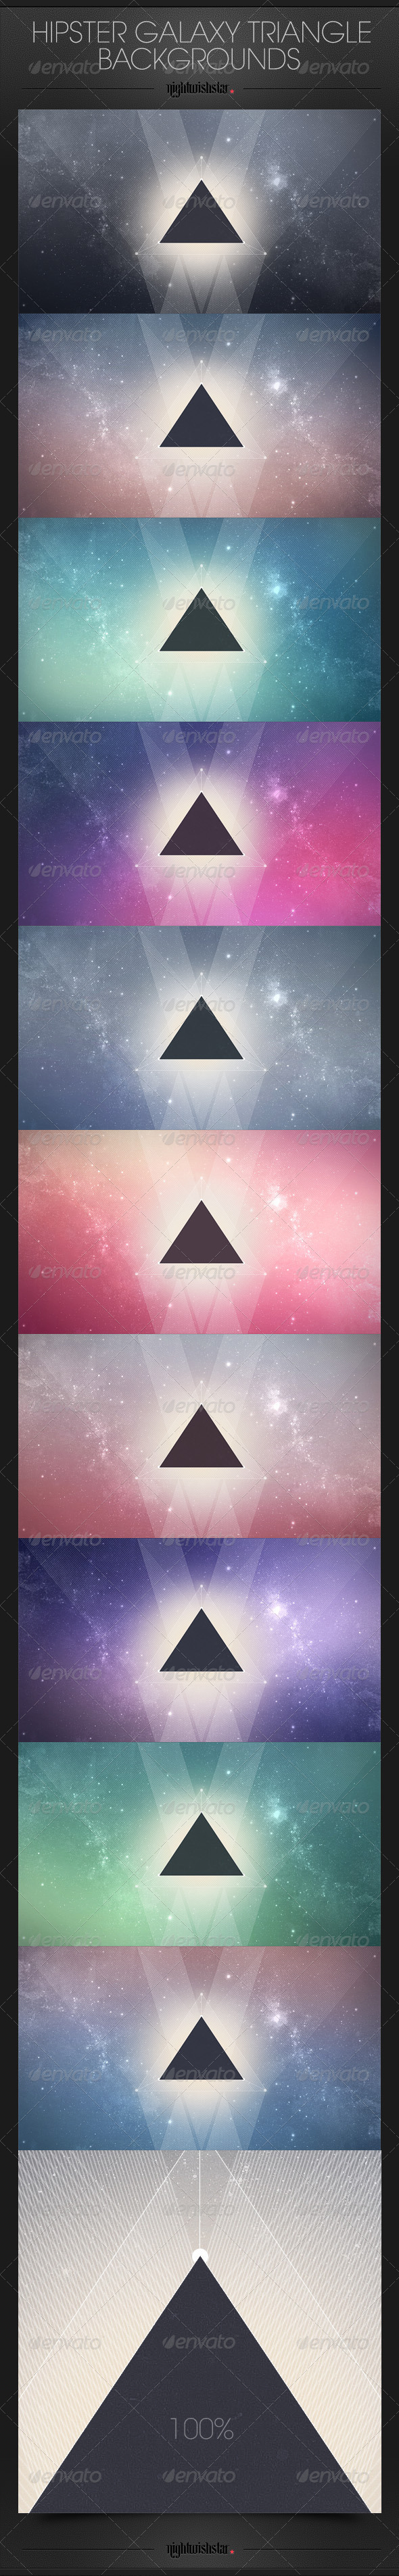 Hipster Galaxy Triangle Backgrounds | GraphicRiver